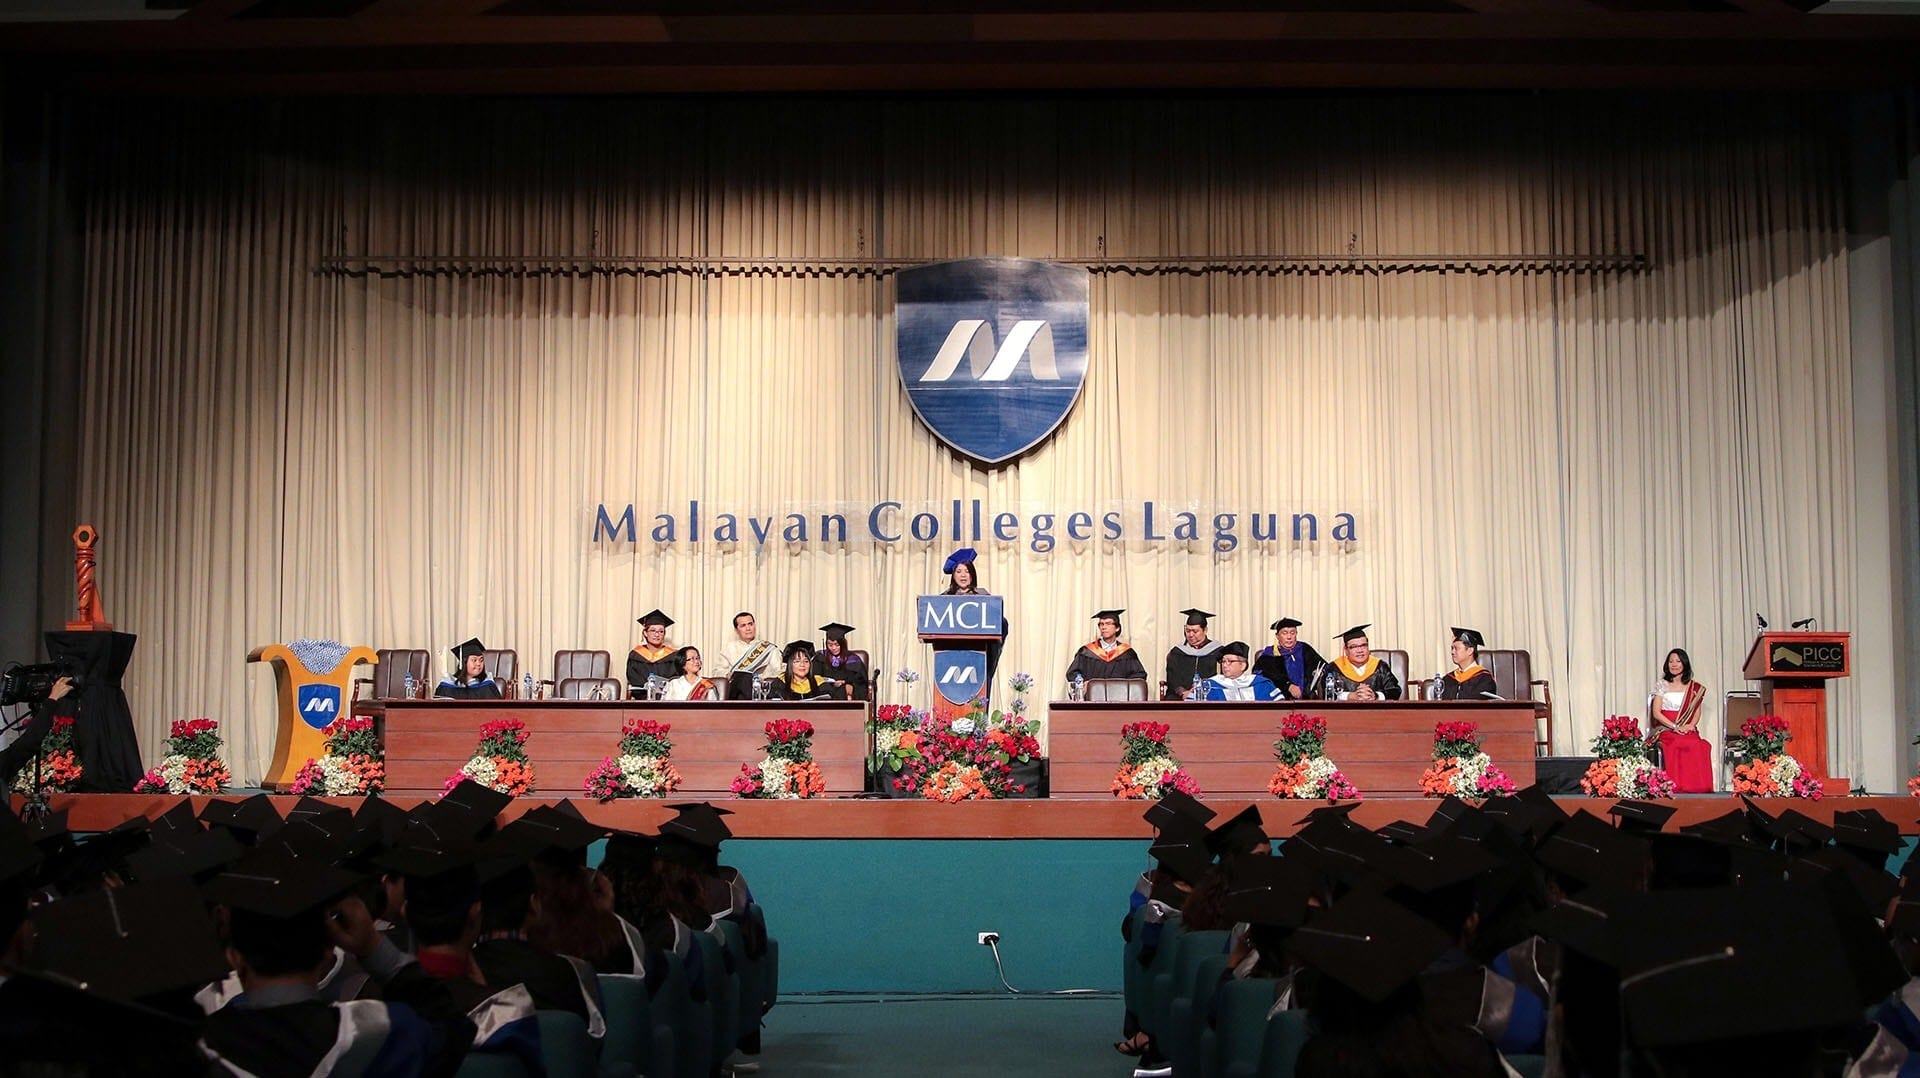 malayan-colleges-laguna-1